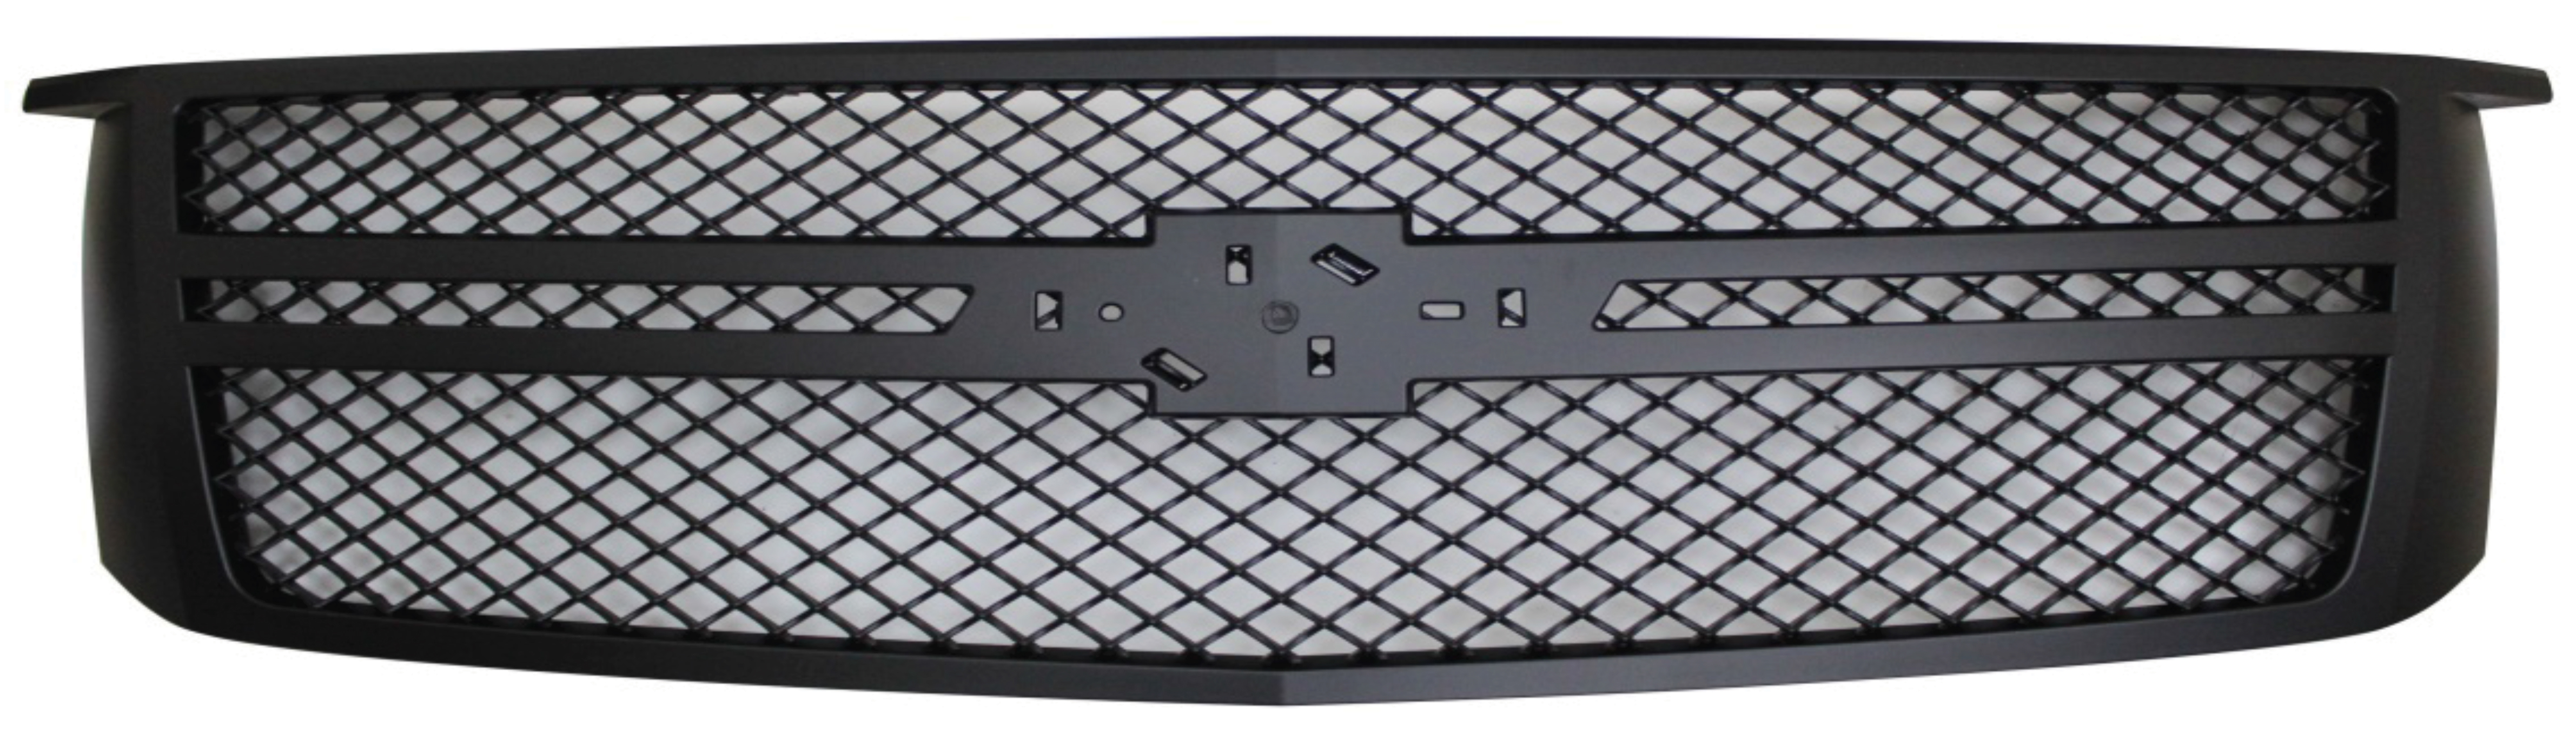 72R-CHTAH15-GM2-BK ABS Matte Black Performance Replacement Bently Mesh Style Grille with Parallel Molding and Emblem Base